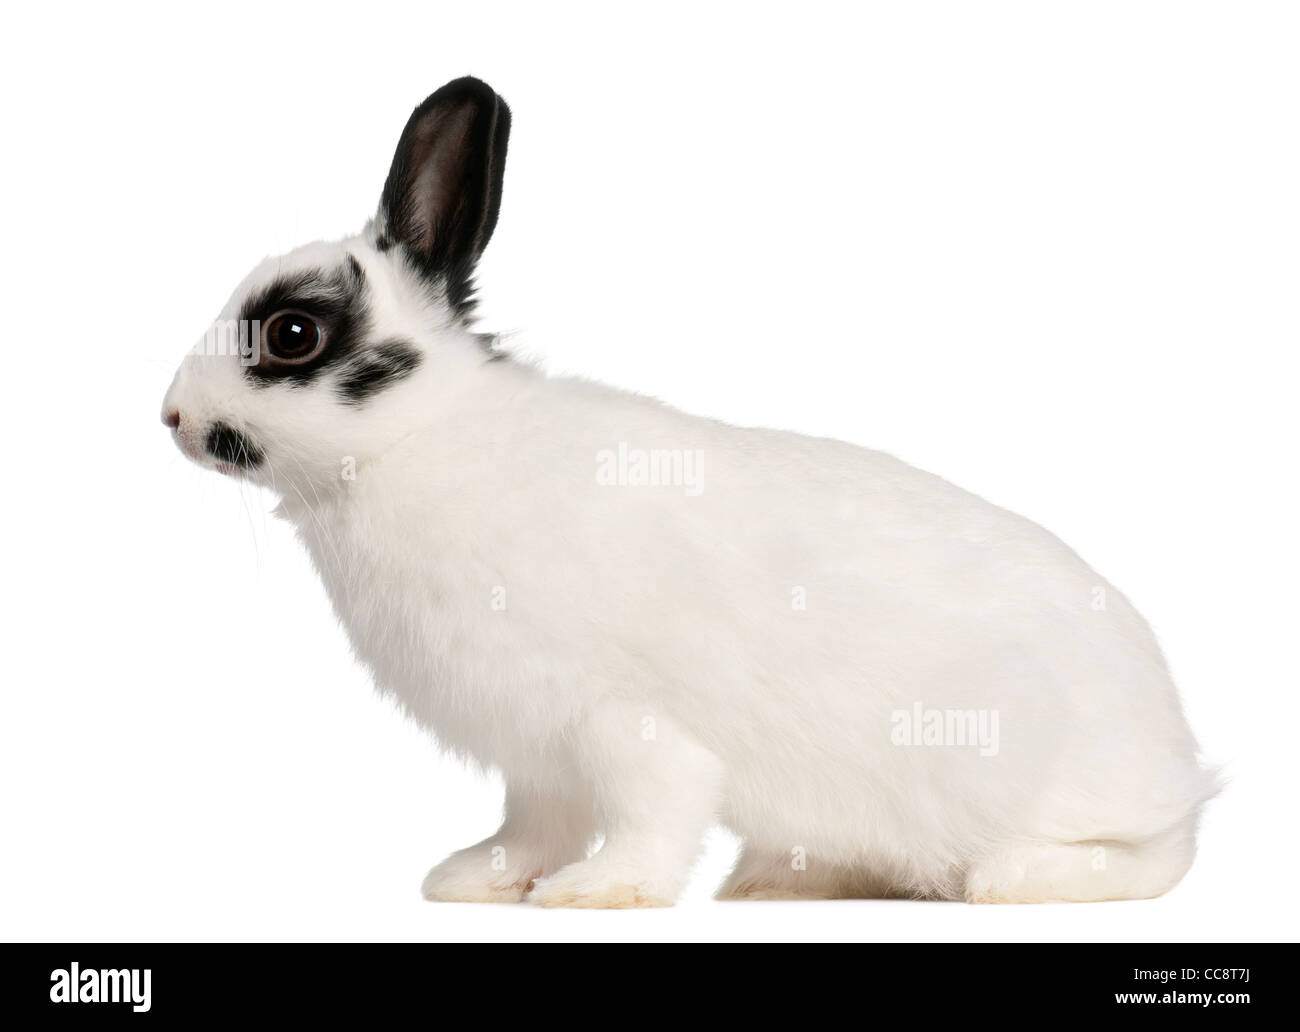 Dalmatian rabbit, 2 months old, Oryctolagus cuniculus, sitting in front of white background - Stock Image